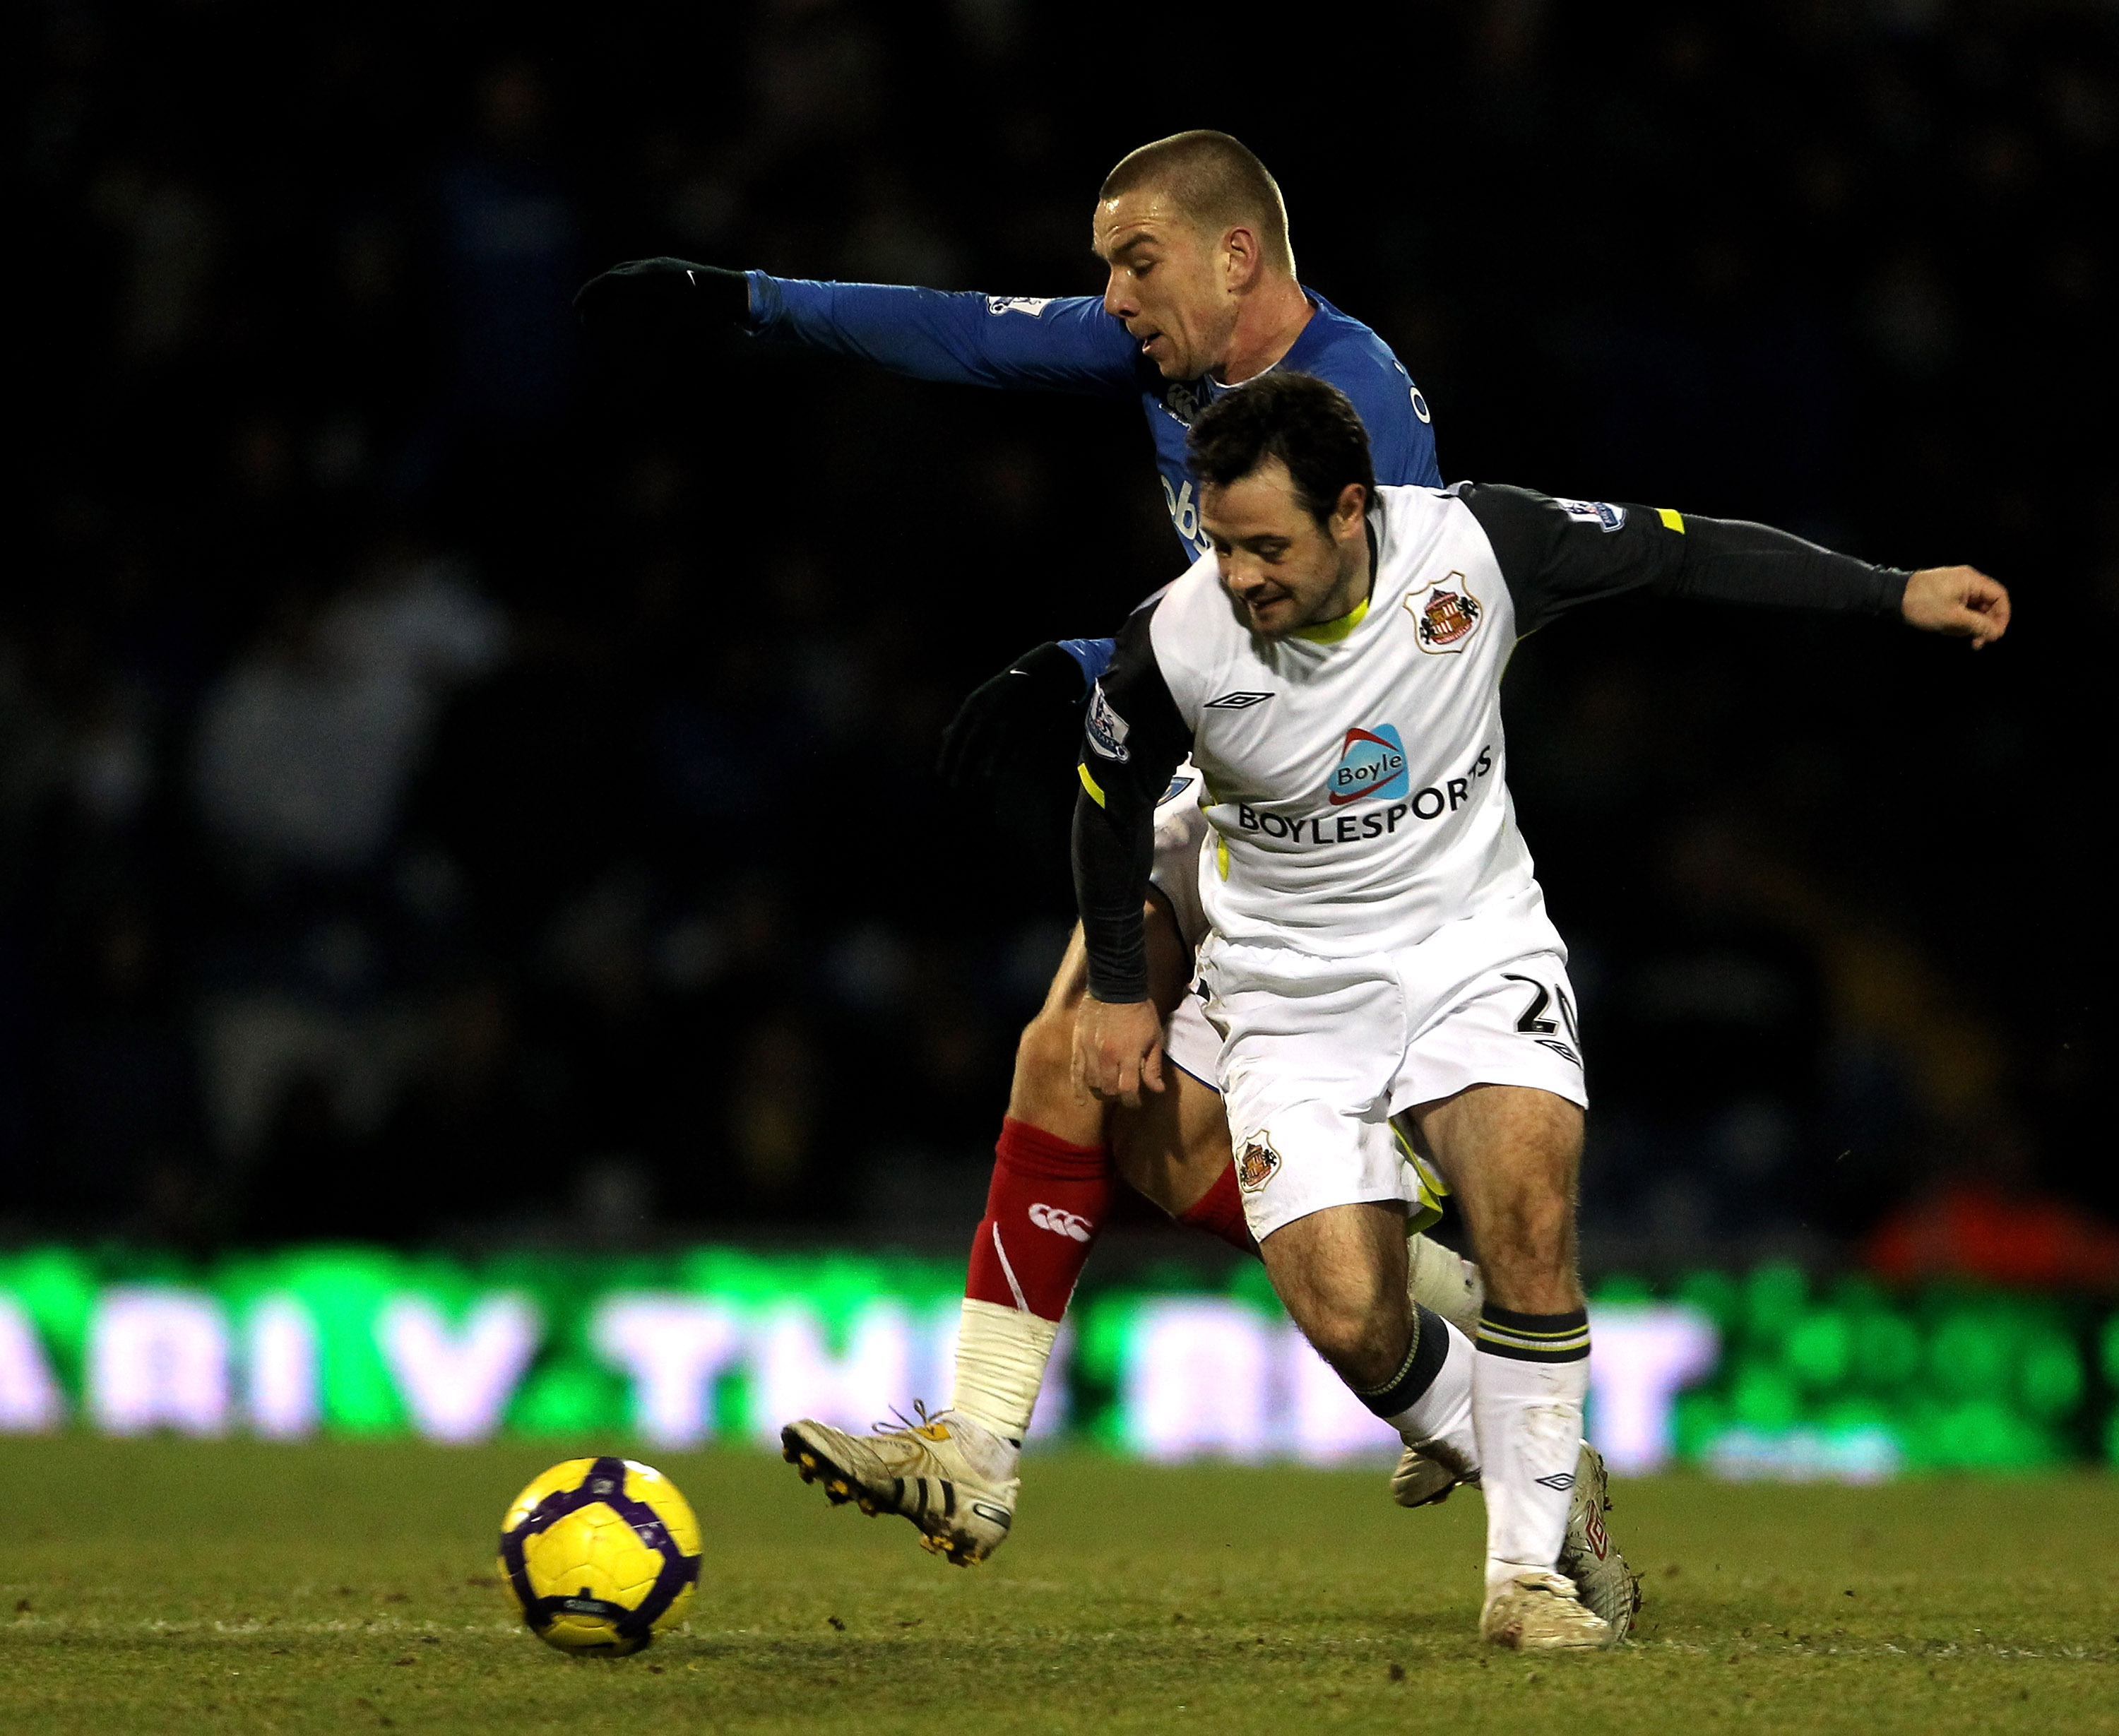 PORTSMOUTH, ENGLAND - FEBRUARY 09: Jamie O'Hara of Portsmouth gets tackled by Andy Reid of Sunderland during the Barclays Premier League match between Portsmouth and Sunderland at Fratton Park on February 9, 2010 in Portsmouth, England.  (Photo by Phil Co